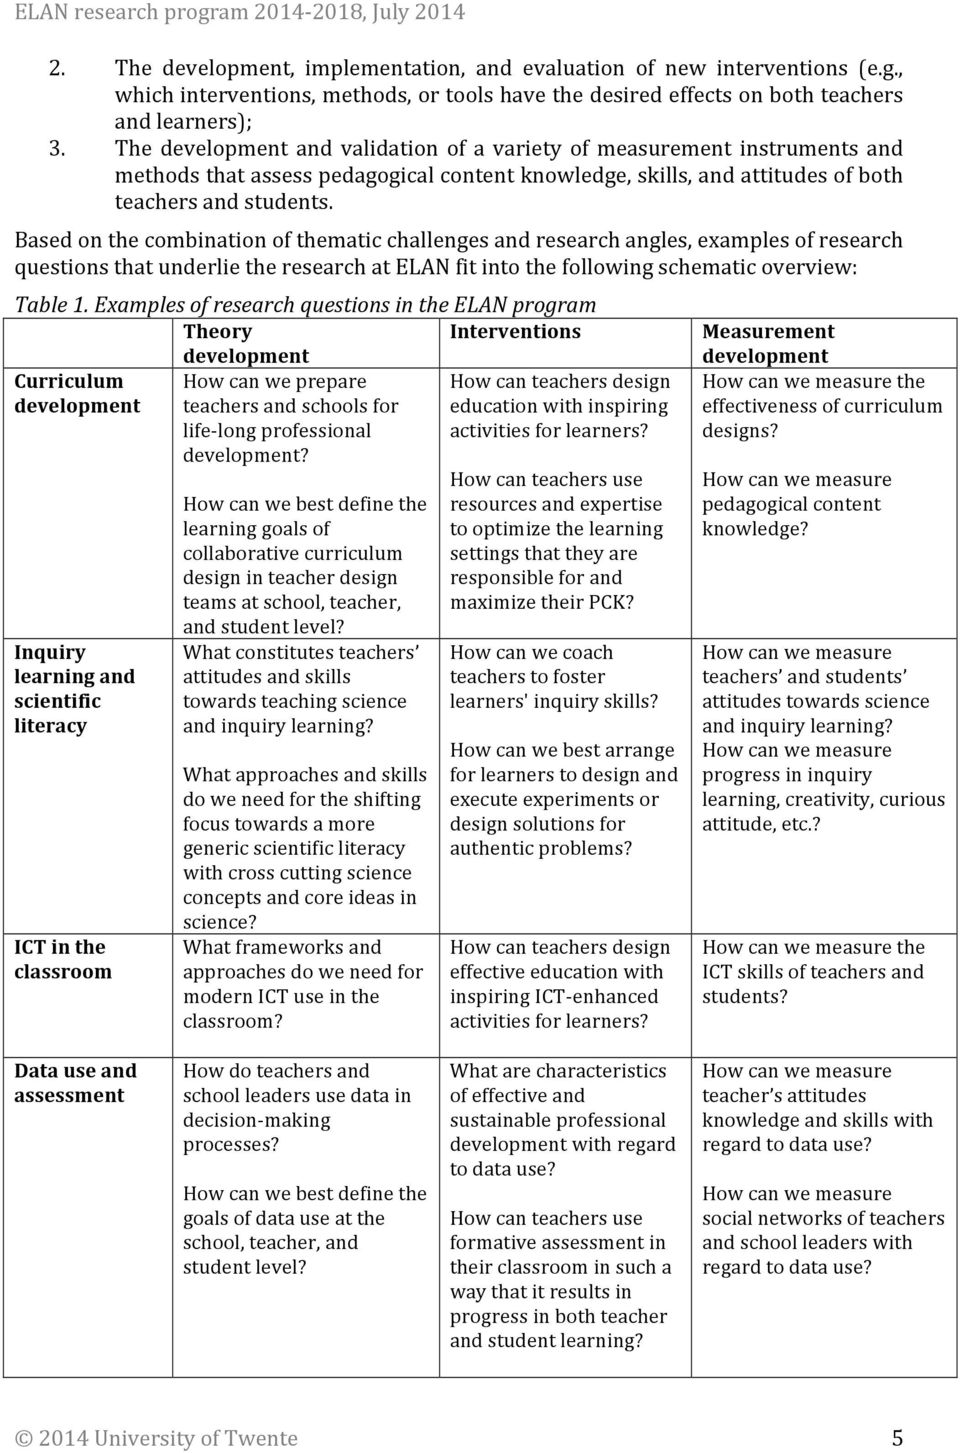 Based on the combination of thematic challenges and research angles, examples of research questions that underlie the research at ELAN fit into the following schematic overview: Table 1.